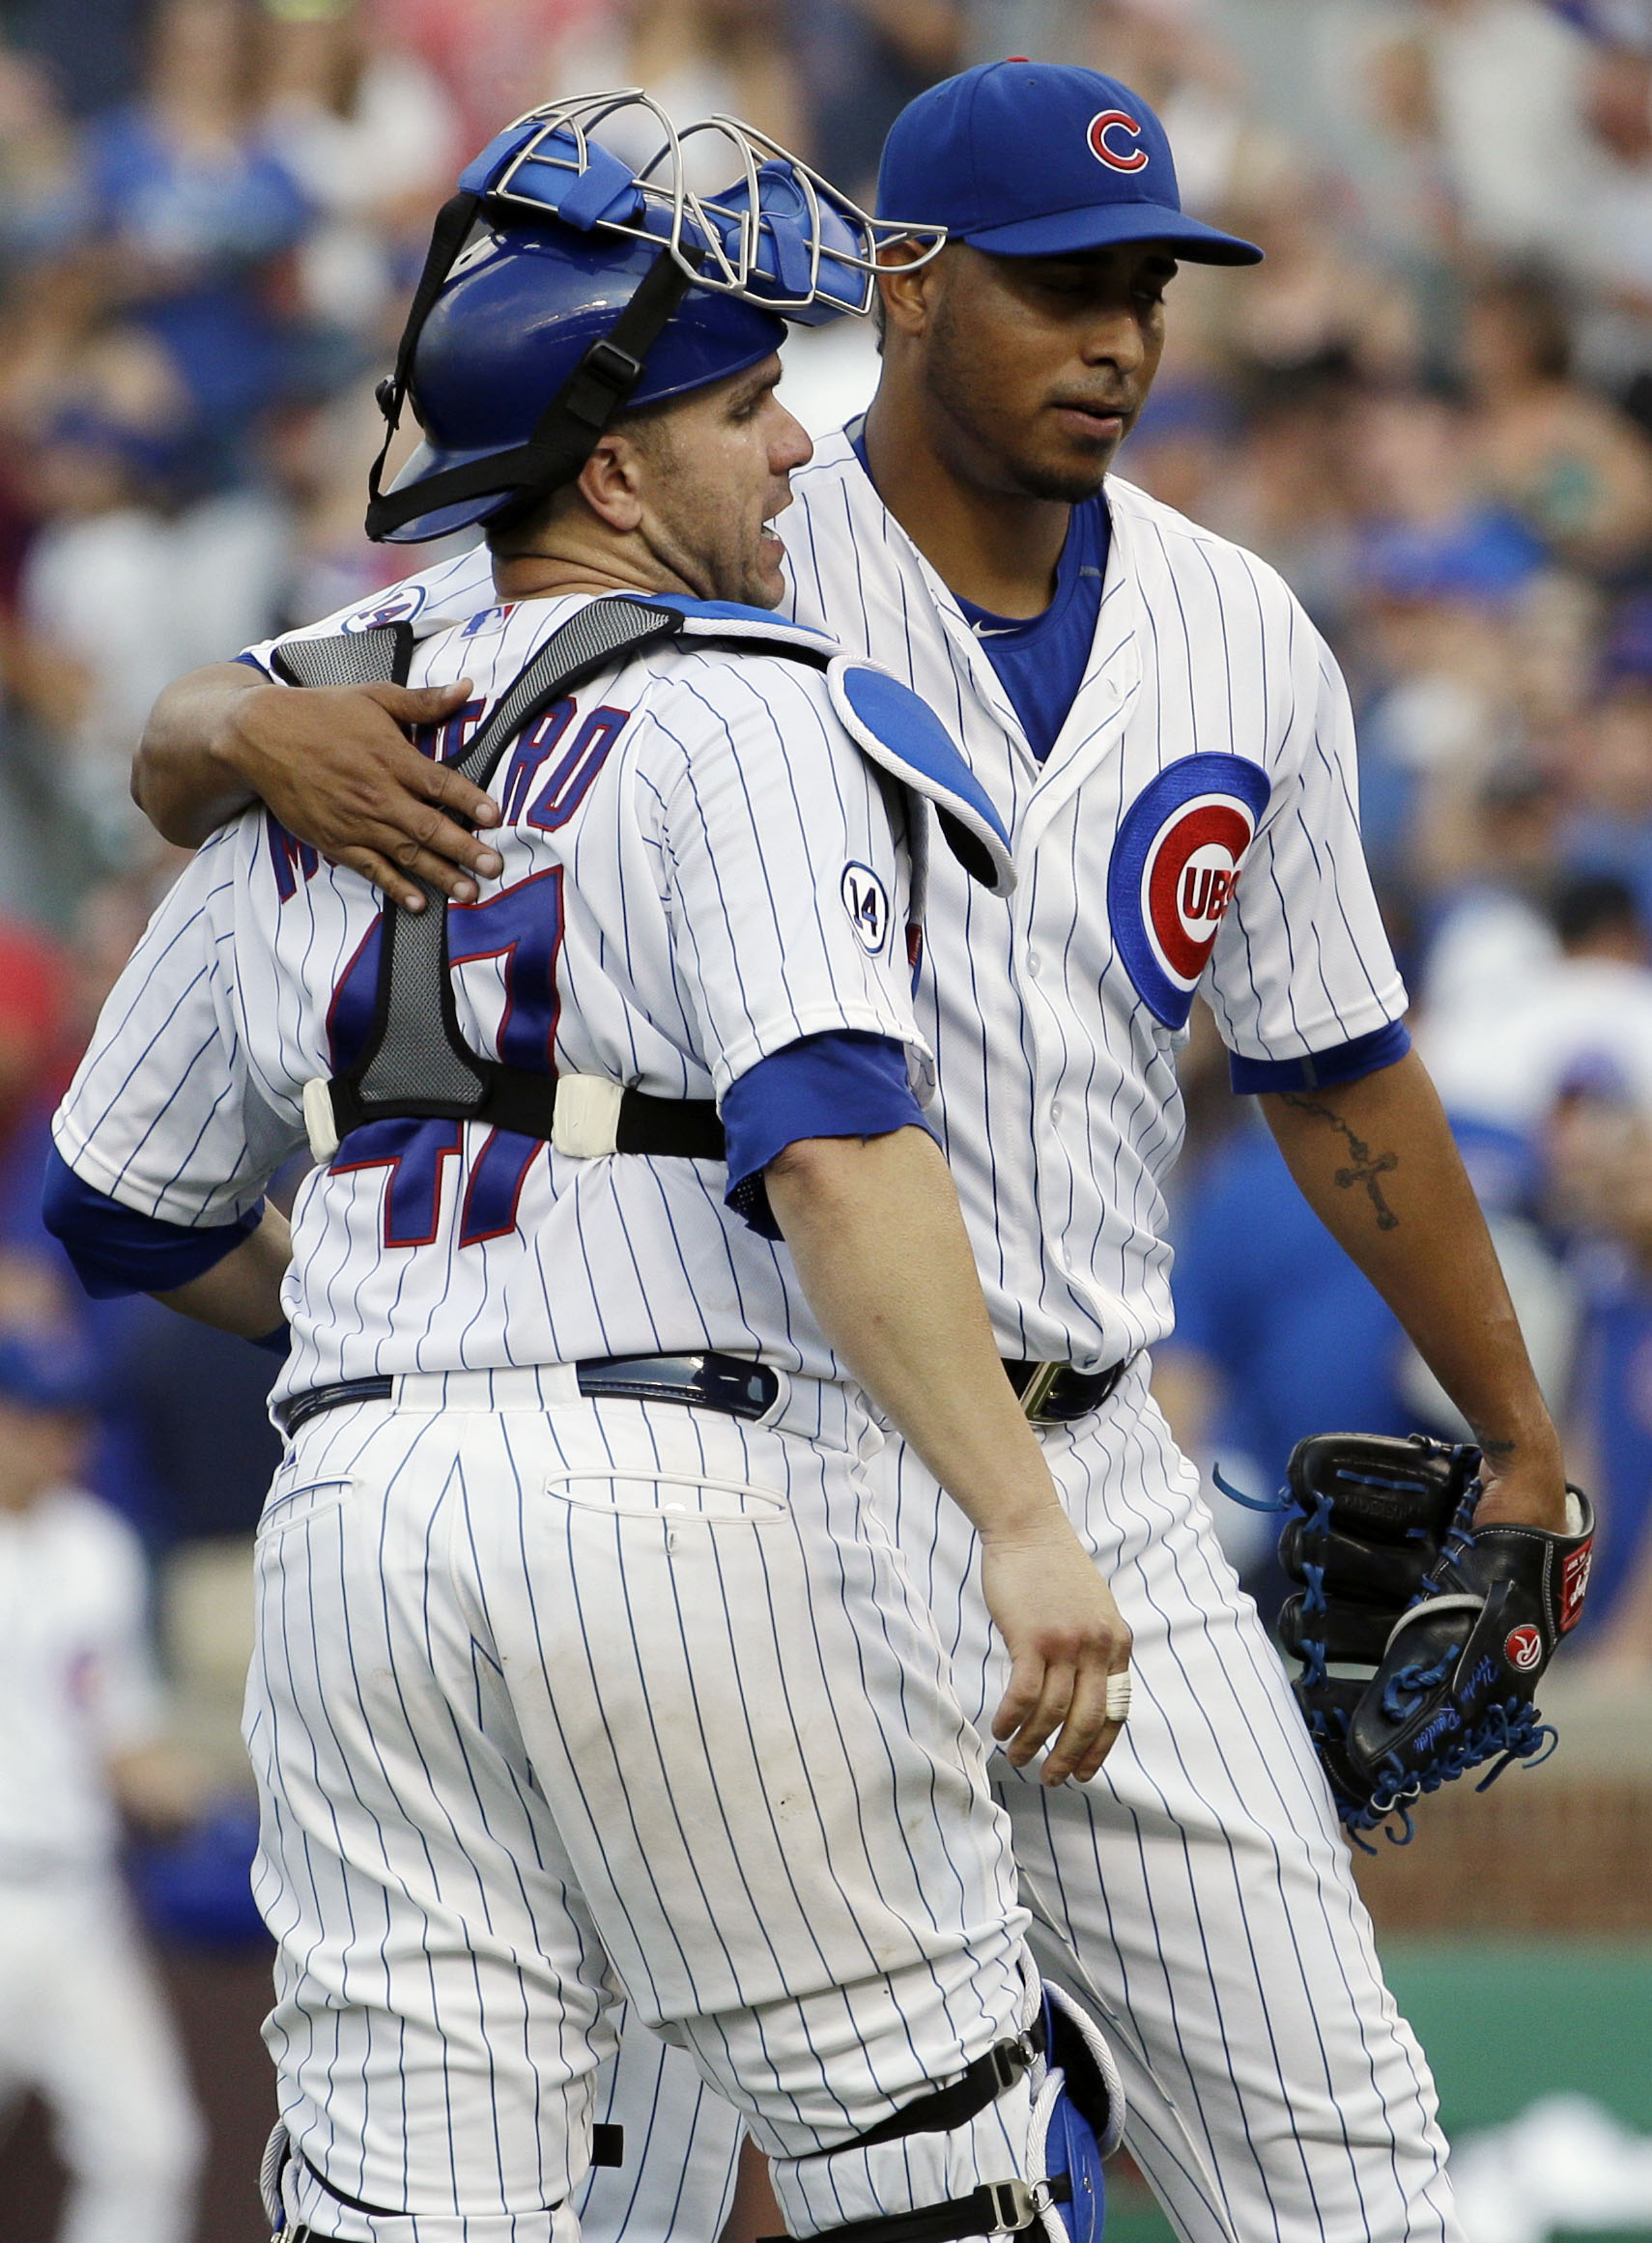 Chicago Cubs closer Hector Rondon, right, celebrates with catcher Miguel Montero after the Cubs defeated the Atlanta Braves 5-3 in a baseball game Friday, Aug. 21, 2015, in Chicago. (AP Photo/Nam Y. Huh)